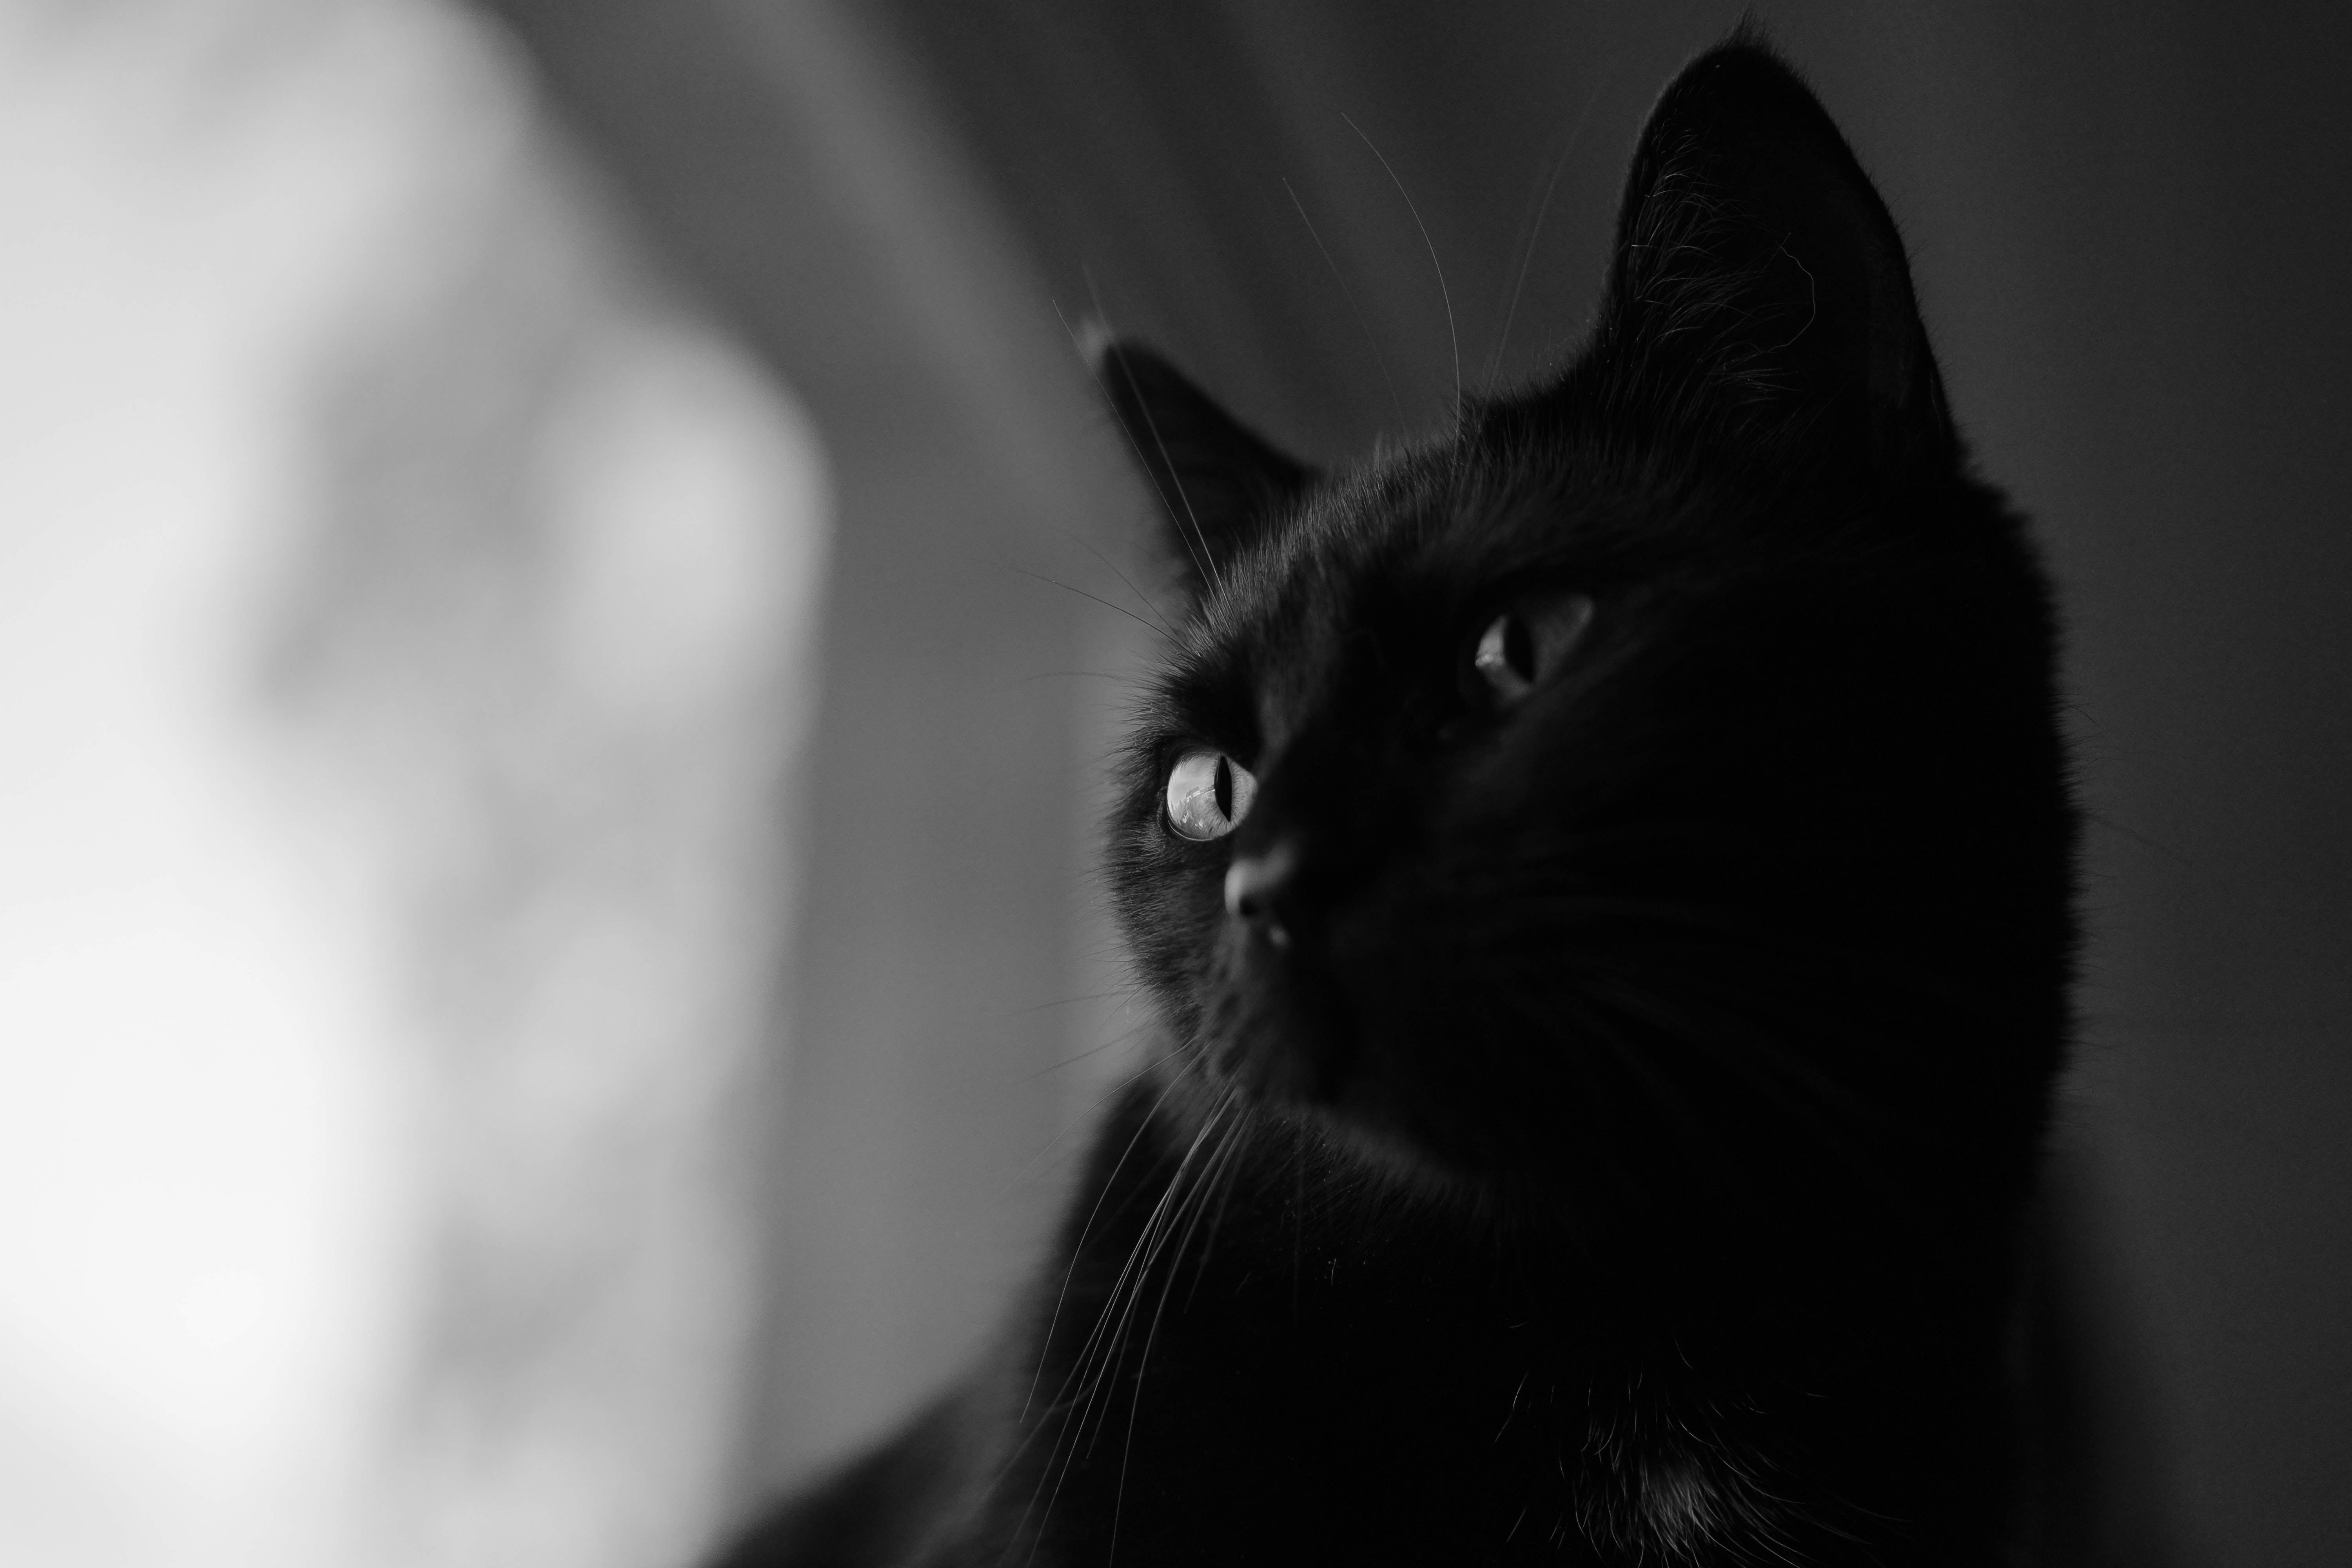 close-up photography of black cat